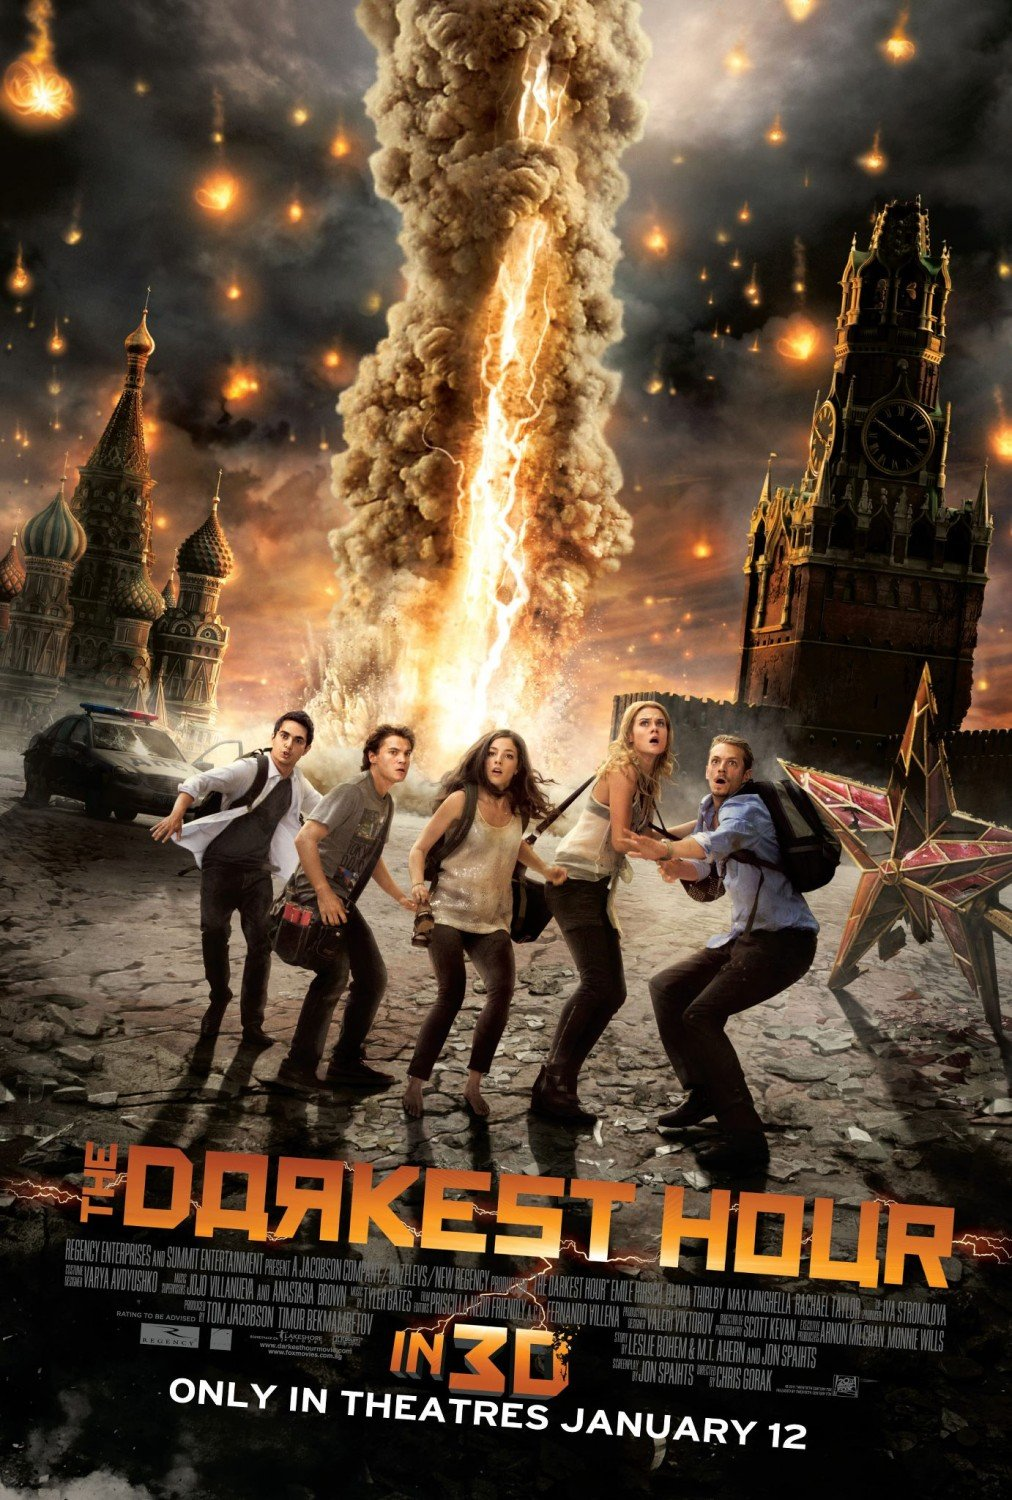 The Darkest Hour 2011 Dual Audio 720p BluRay x264 [Hindi – English] ESubs | Watch Online | Downlaod